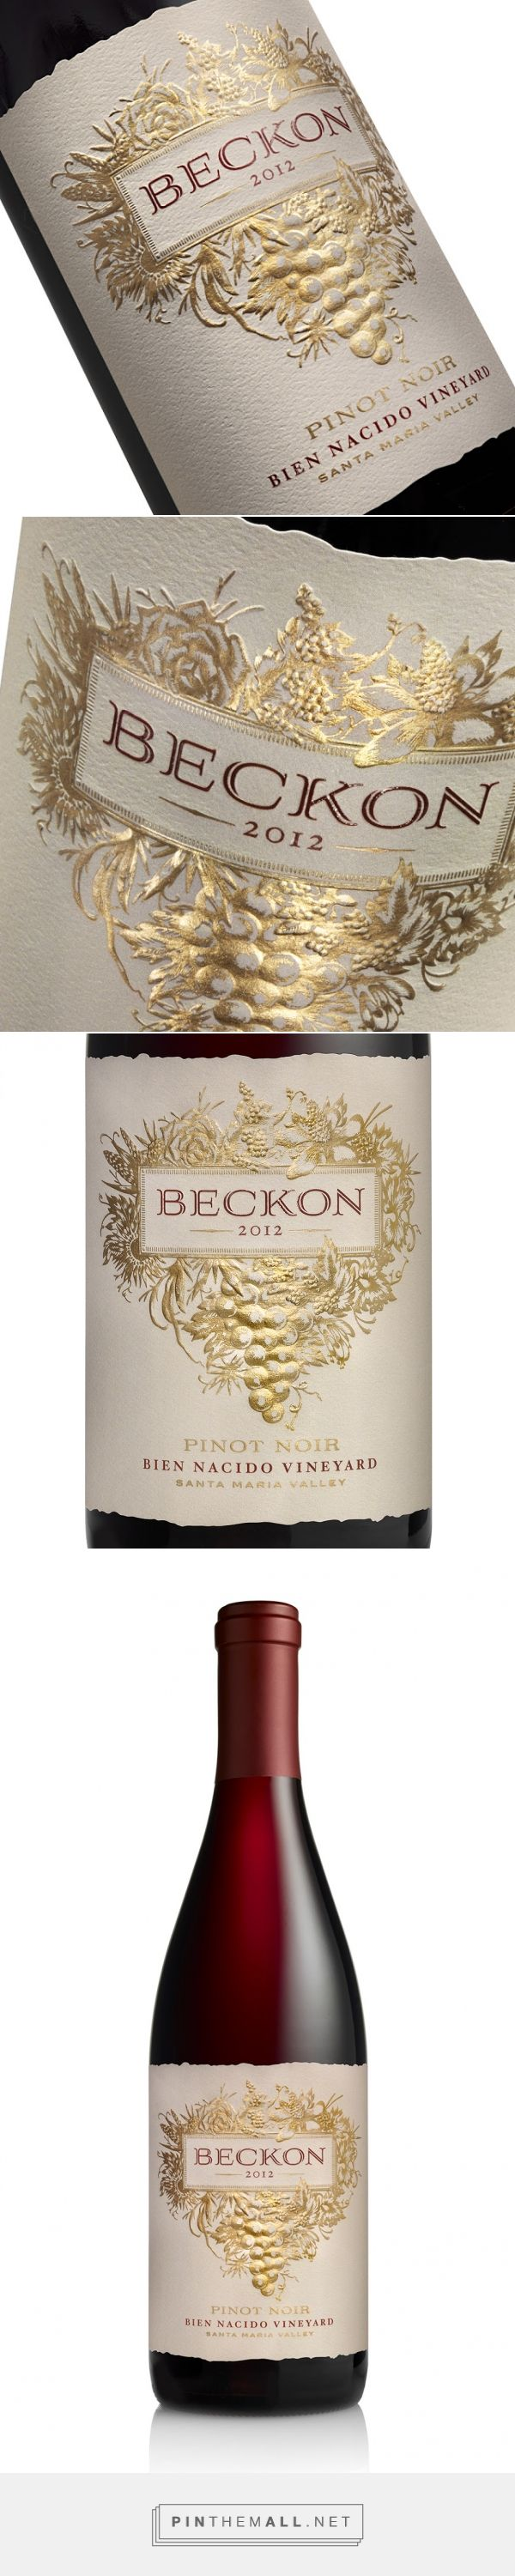 Beckon Wines - Packaging of the World - Creative Package Design Gallery - http://www.packagingoftheworld.com/2016/01/beckon-wines.html